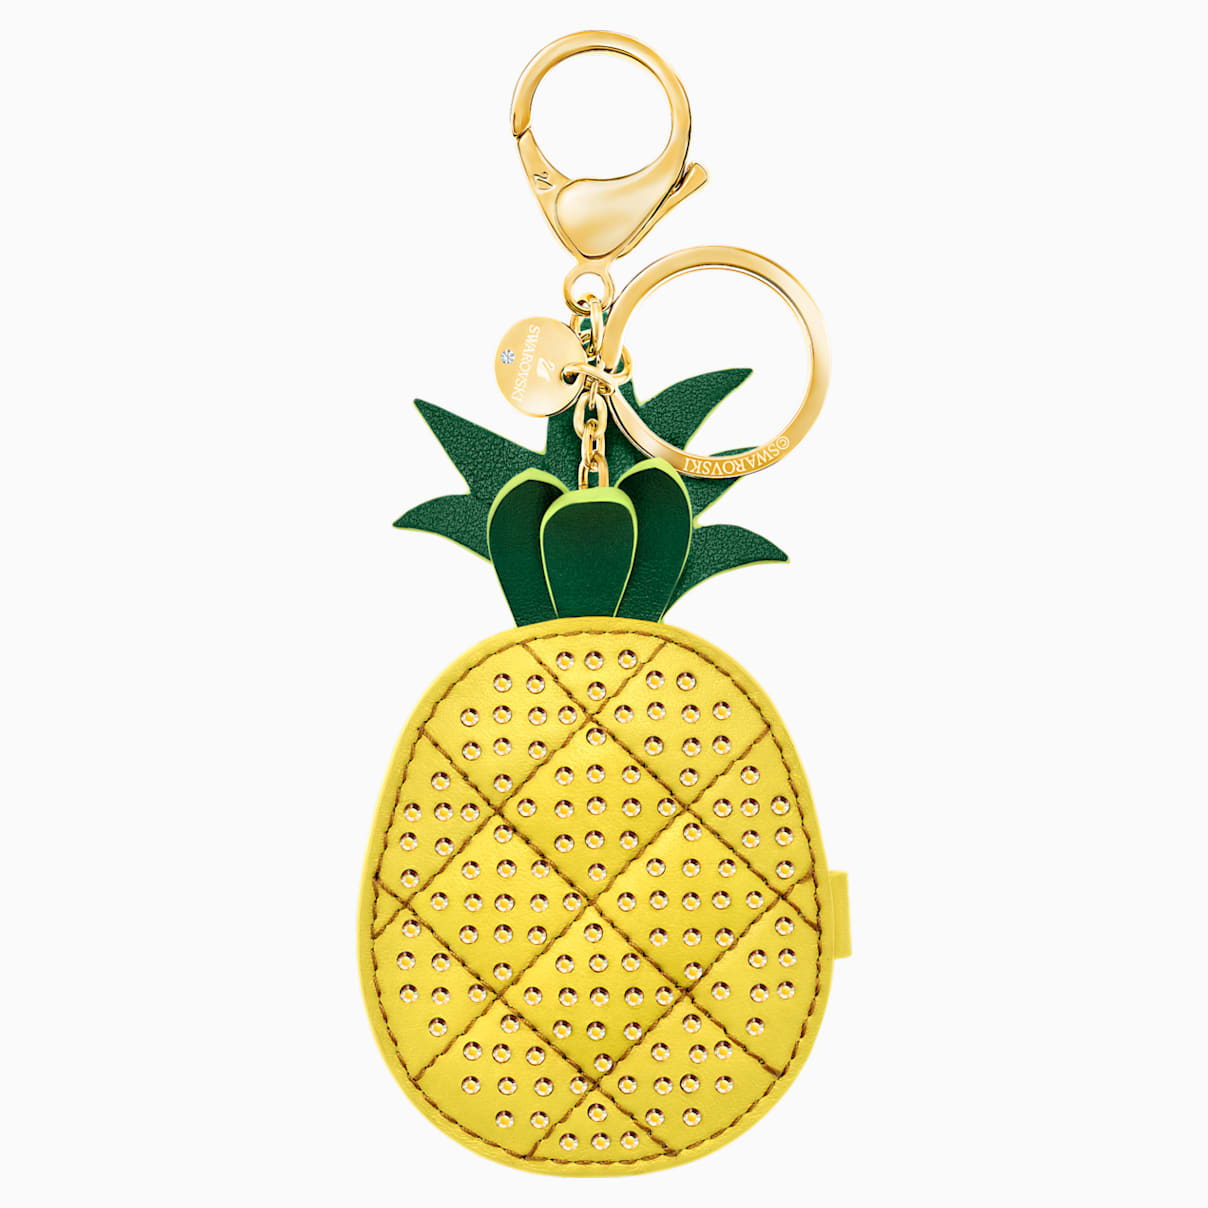 Accessorio per borse Lime, giallo, placcatura oro